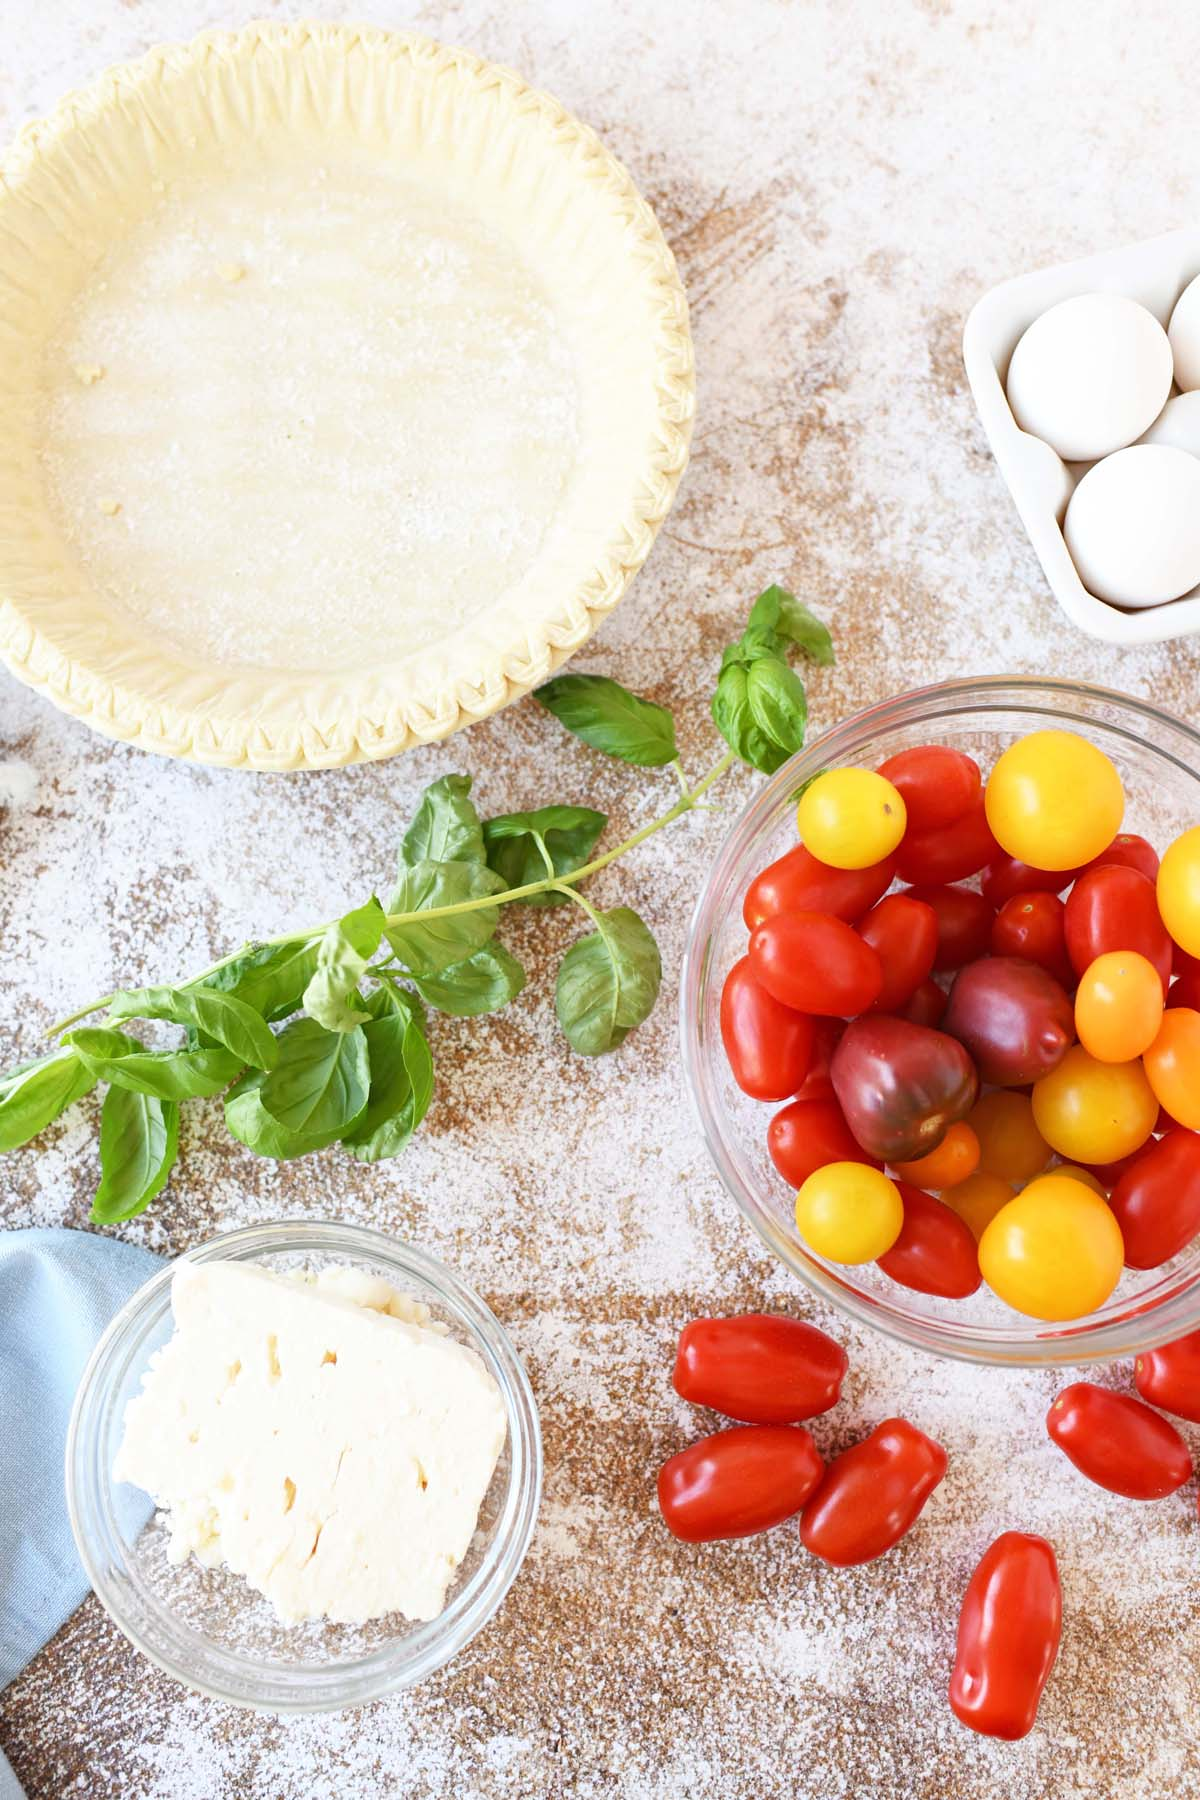 Feta, tomato, pie crust, and basil on a speckled table.